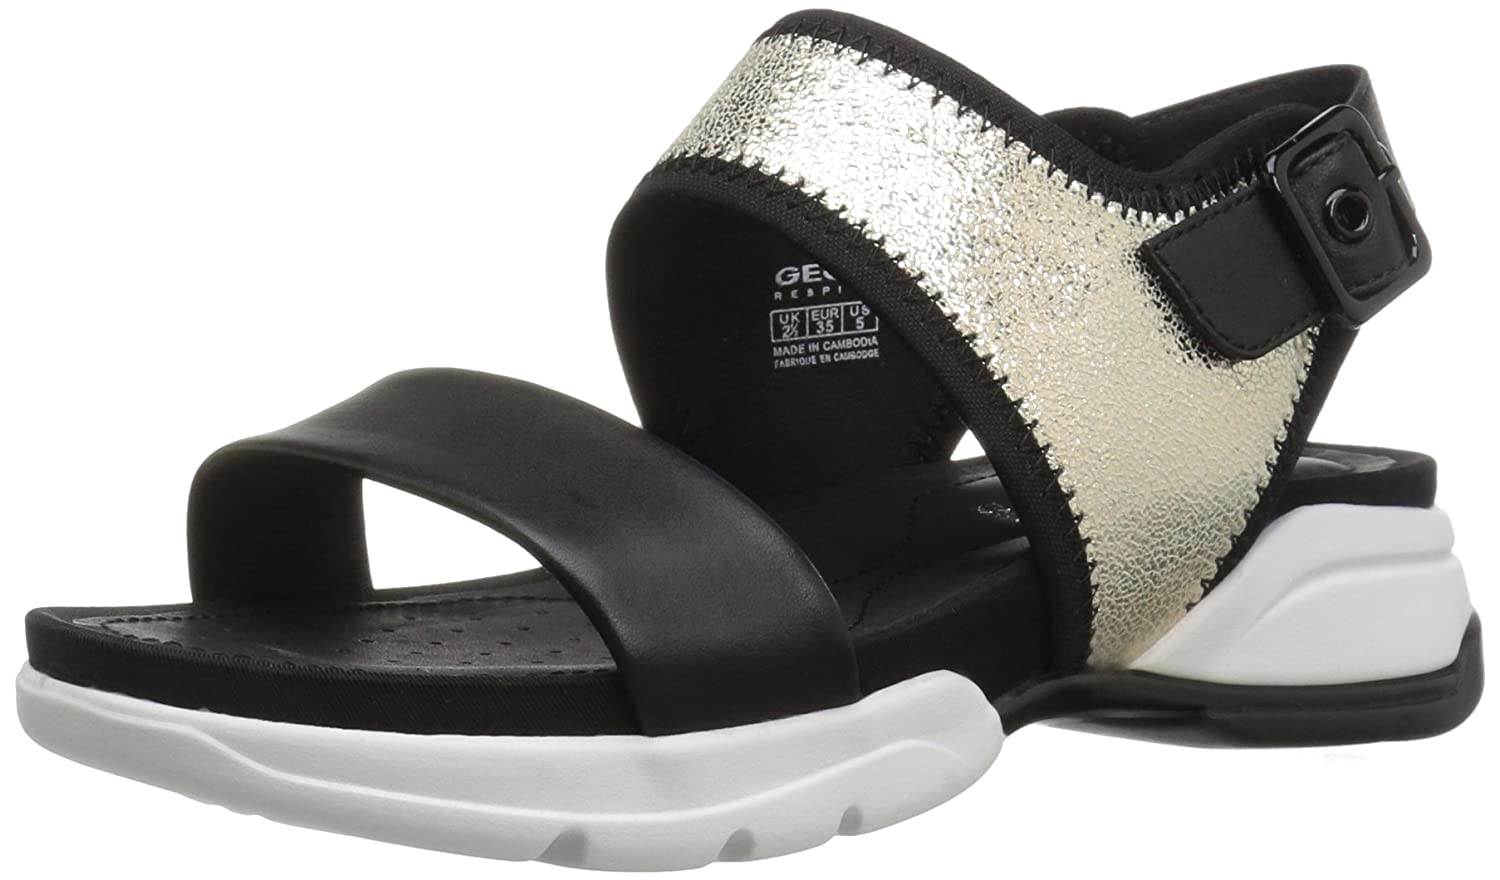 Geox Women's W Sfinge 2 Dress Sandal B01MUAOIFK 41 M EU / 10.5 B(M) US|Light Gold/Black